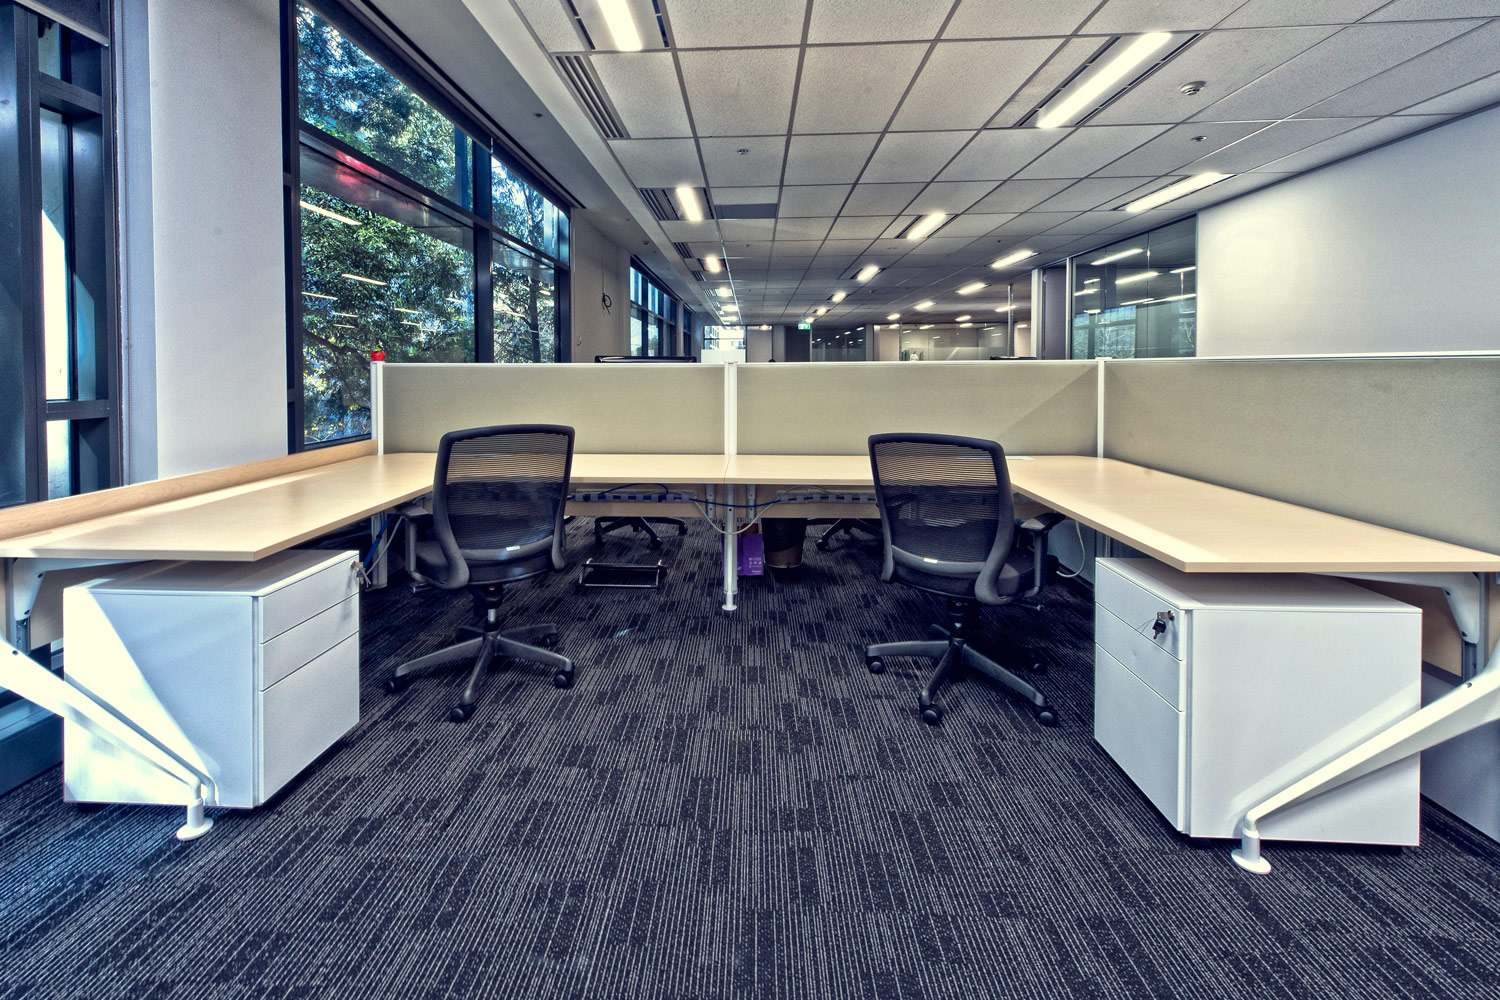 Next workstations, Trick task seating, Easy mobile storage